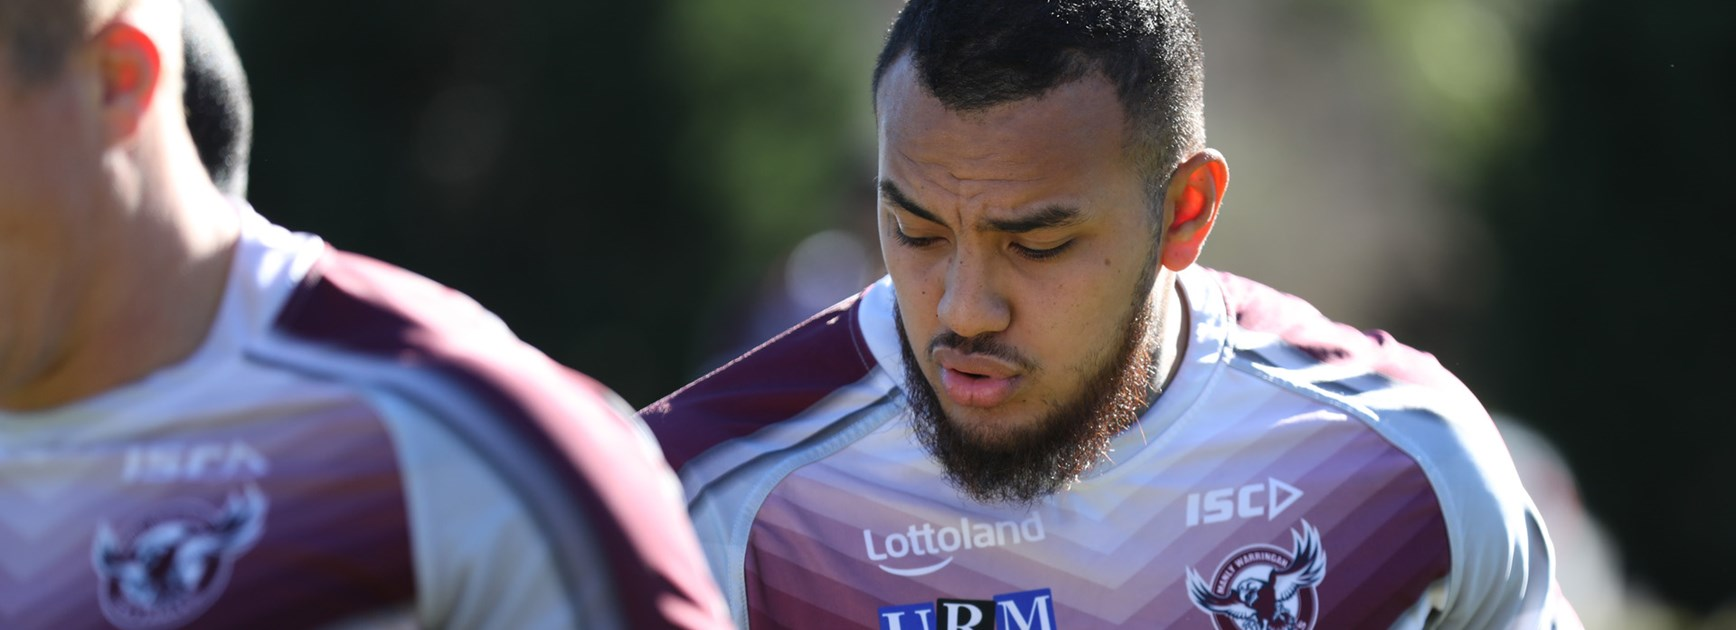 Envy drives Fonua-Blake home as Tonga eyes top tier